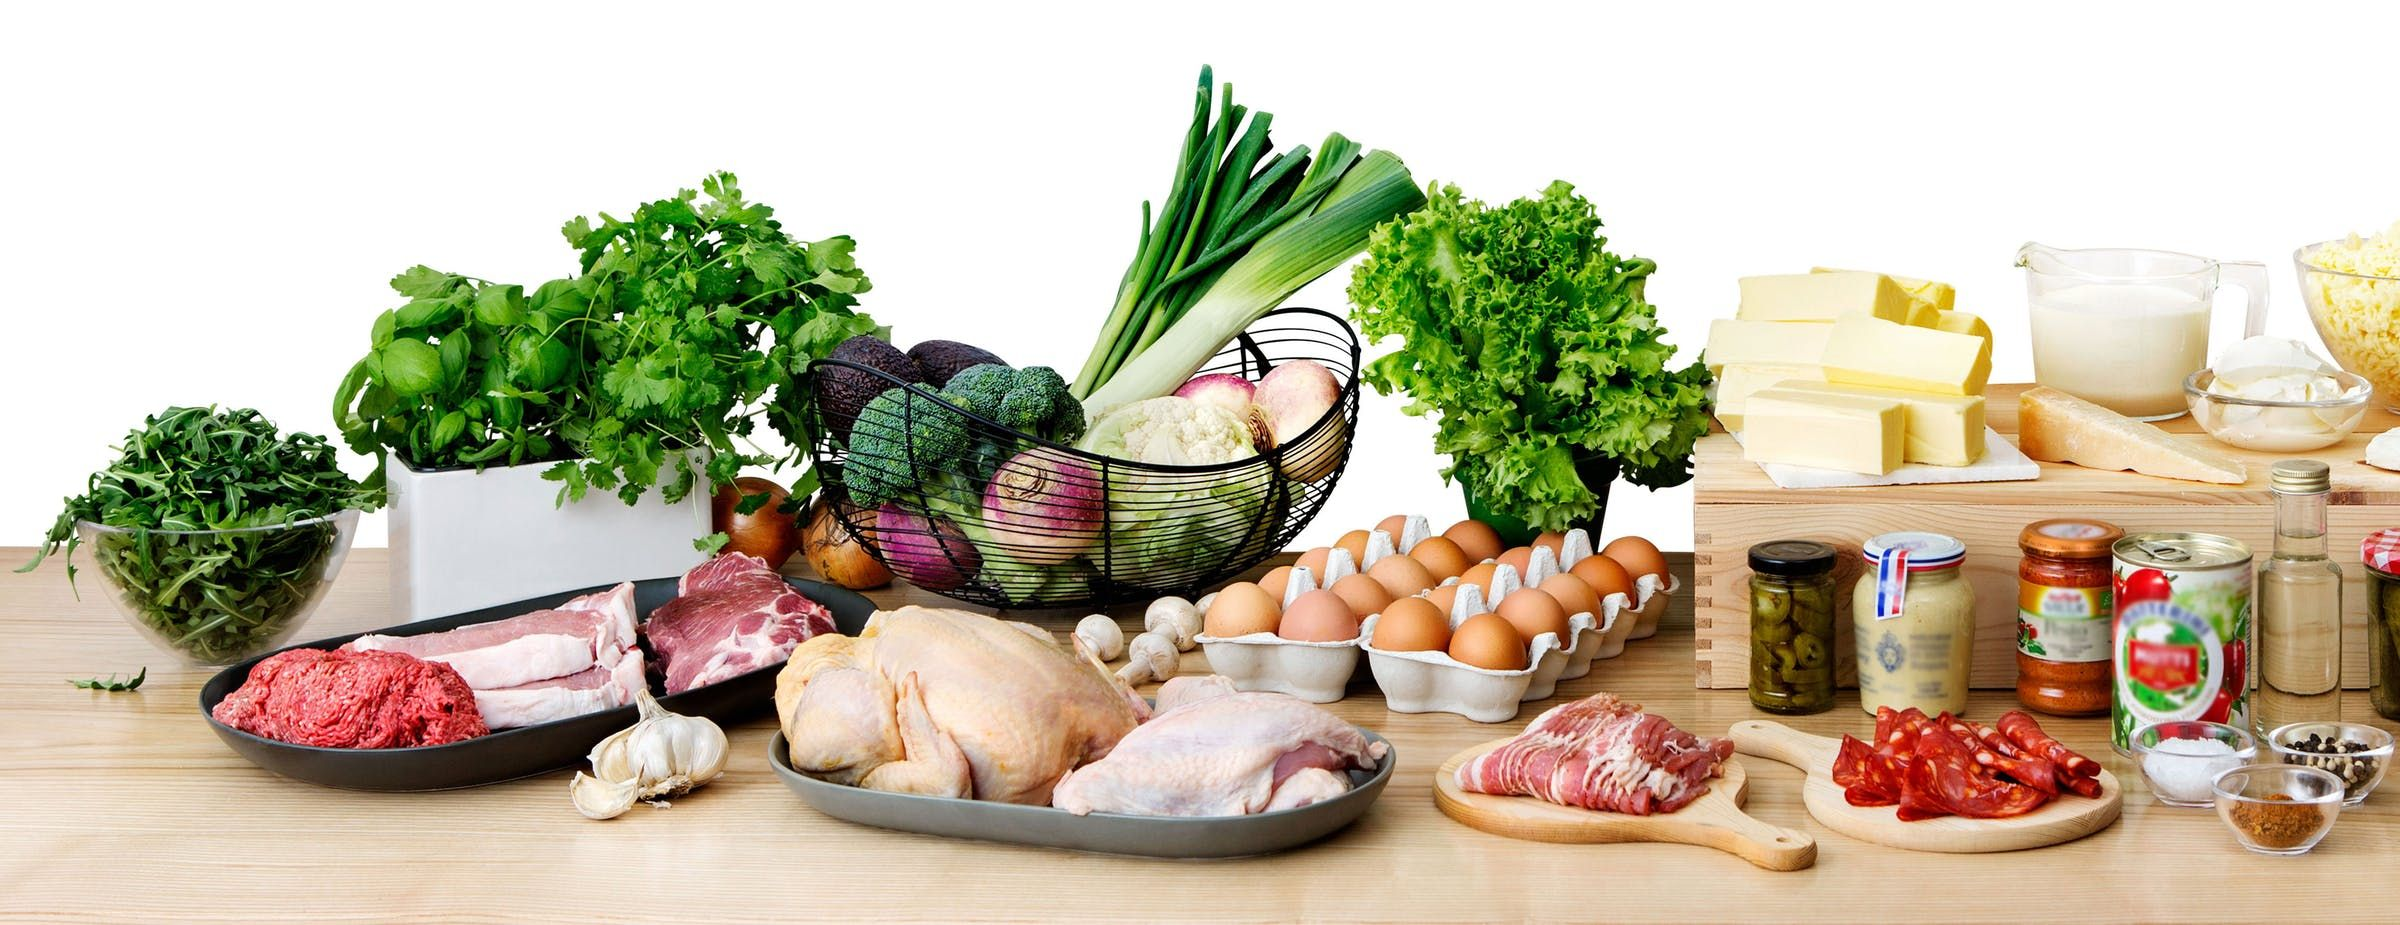 What to Eat and Avoid on a Ketogenic Diet Ketogenic diet